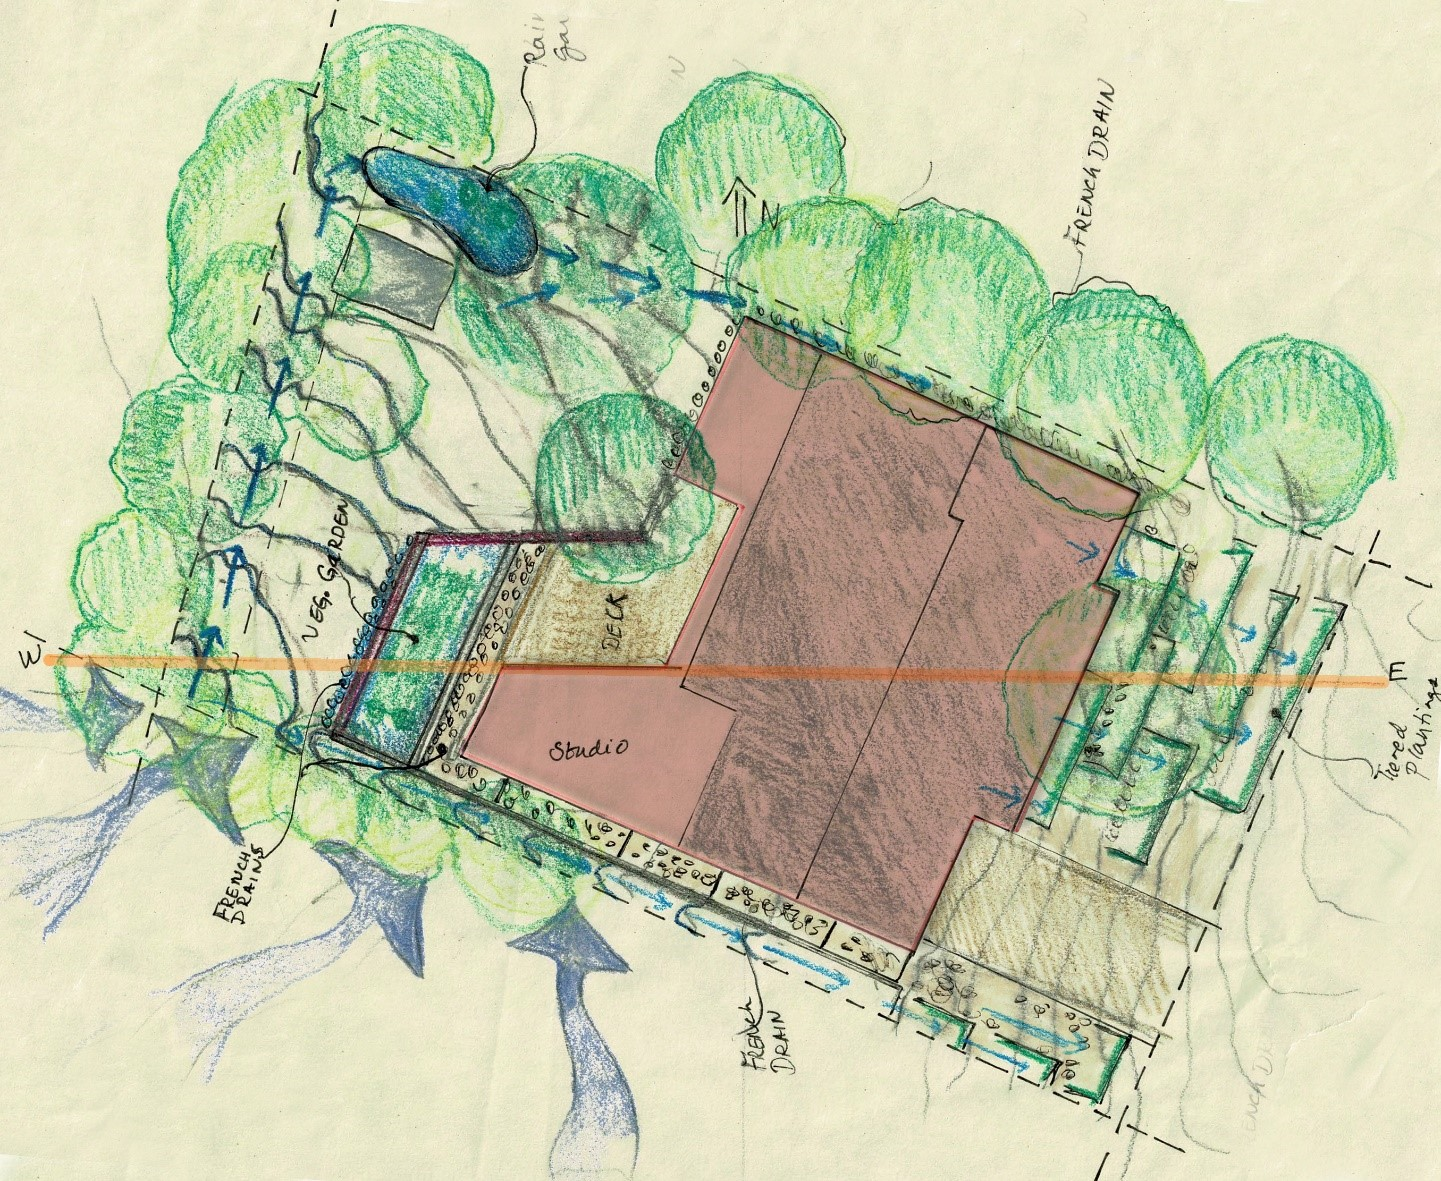 New site plan with building addition